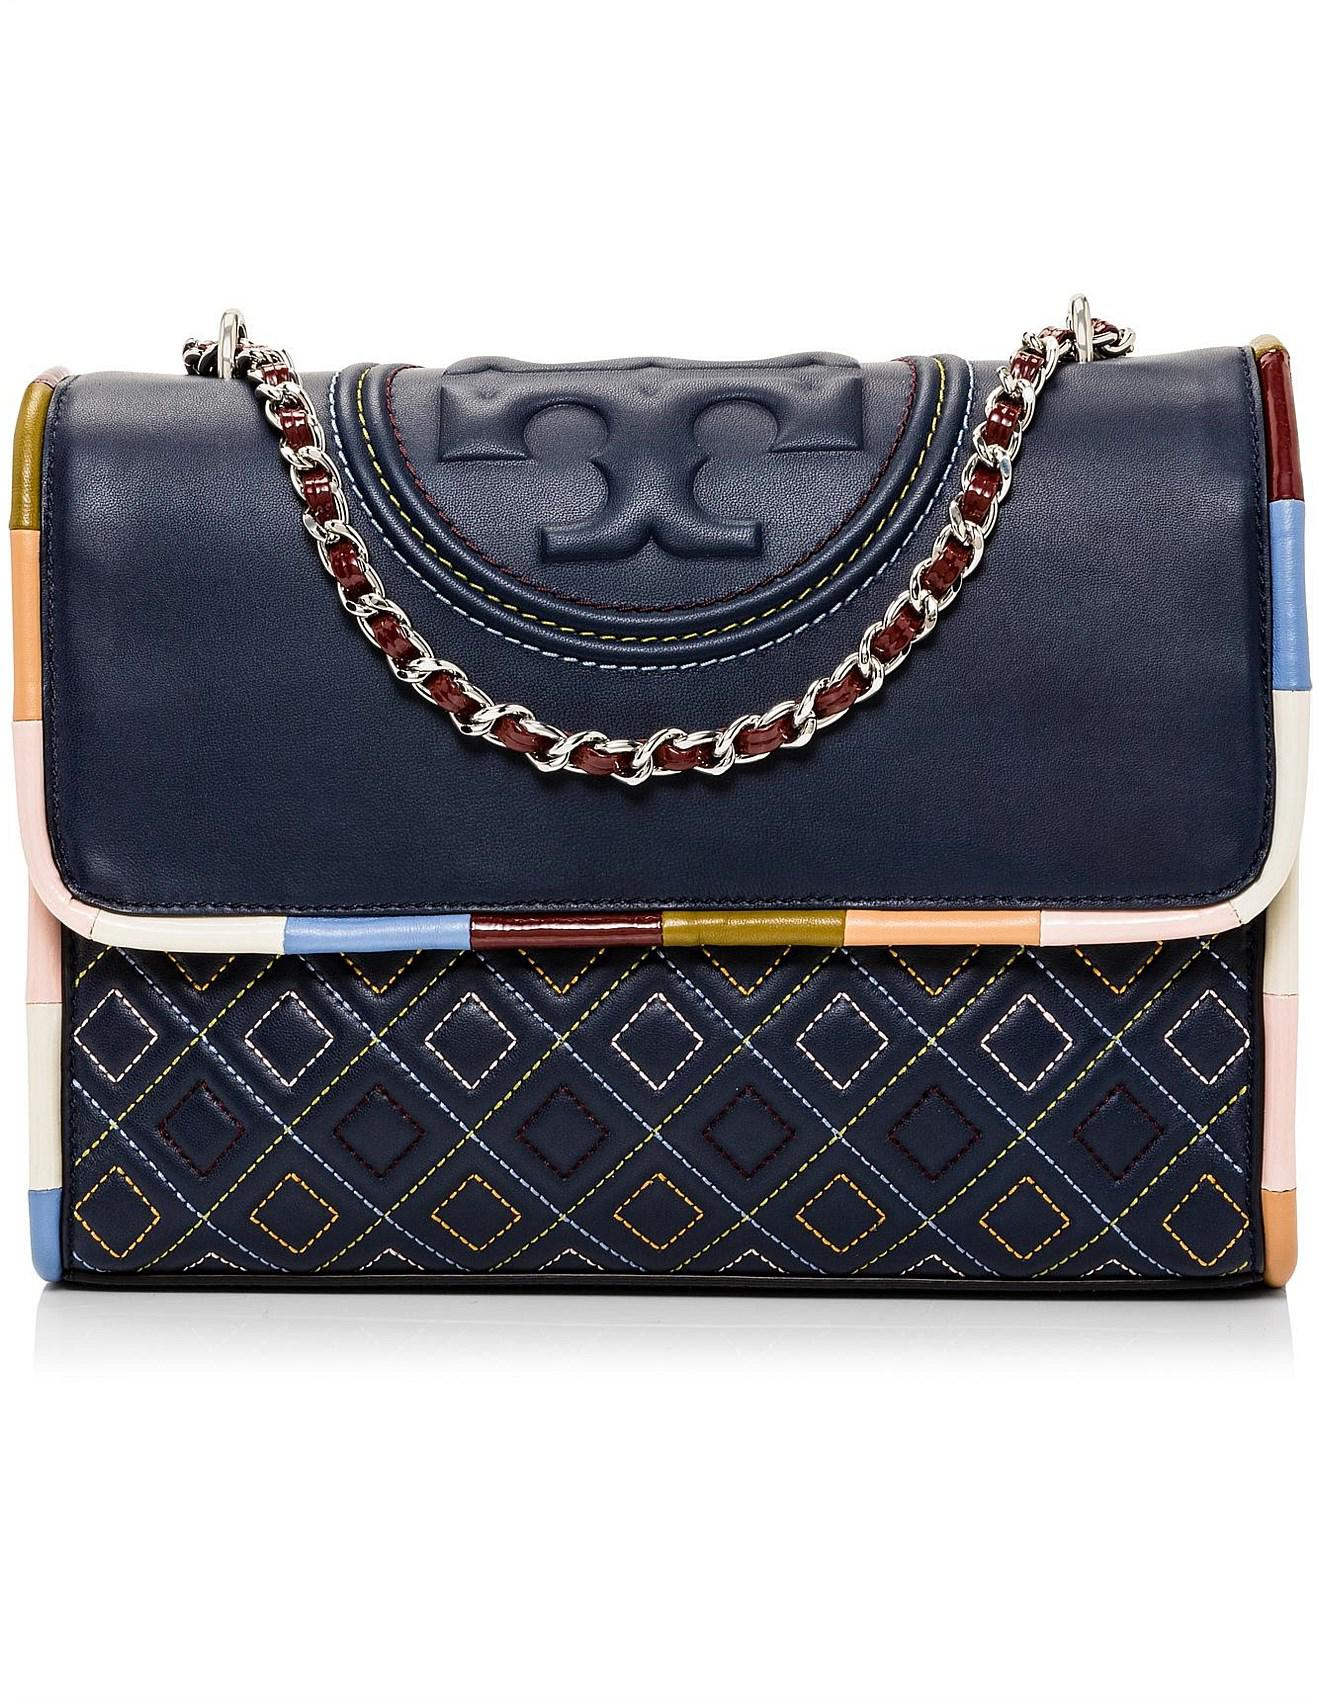 Tory Burch Fleming Piping Shoulder Bag in Blue - Lyst 783a626030f52